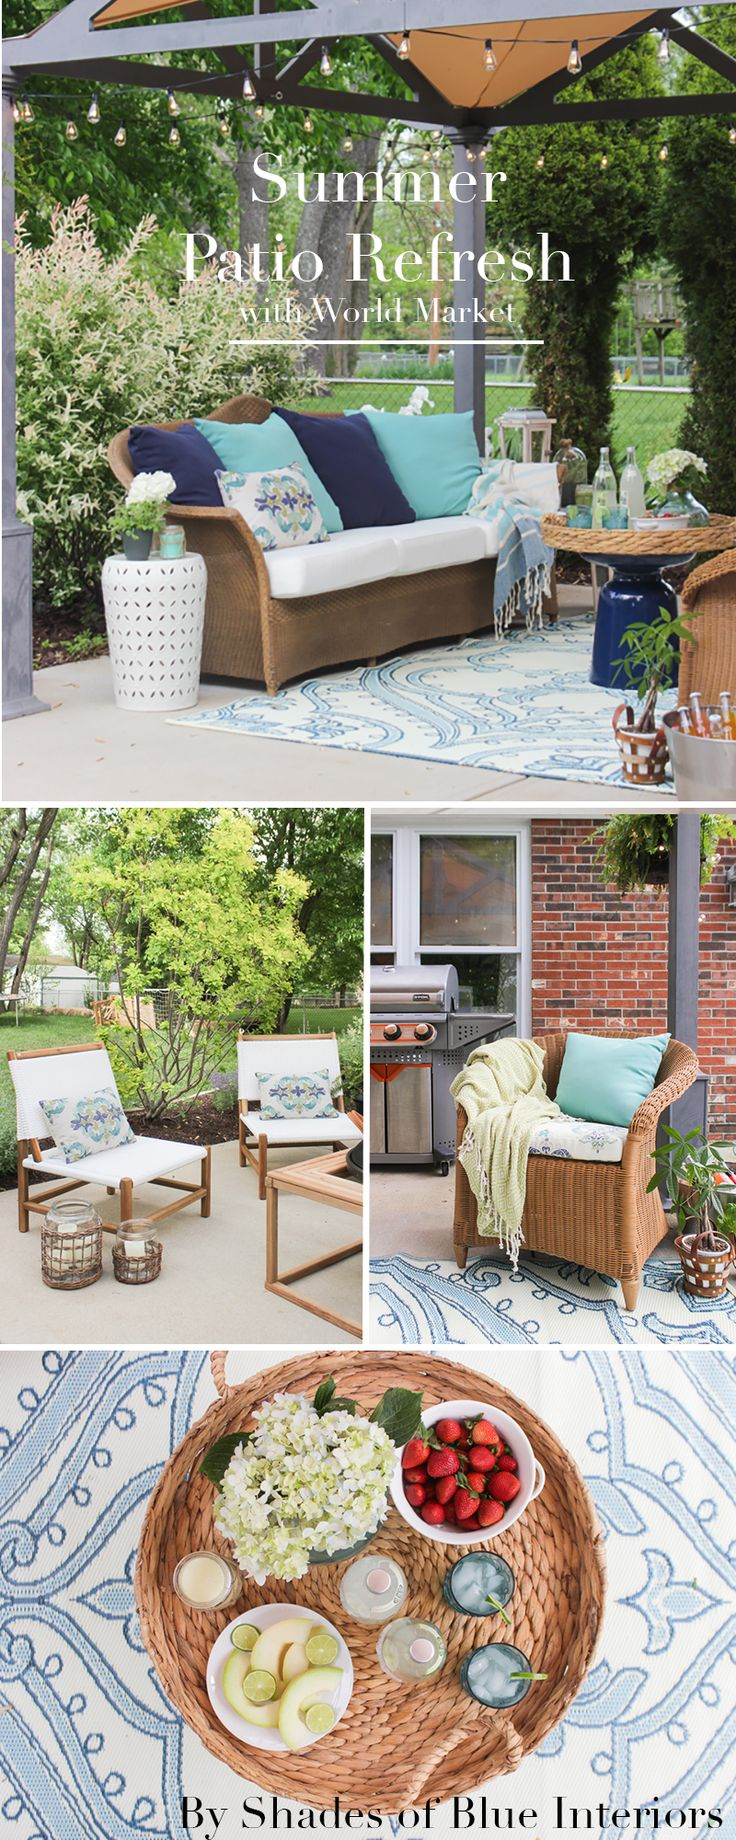 Awesome Summer Patio Refresh Via Shades Of Blue Interiors For Cost Plus World Market  Www.worldmarket